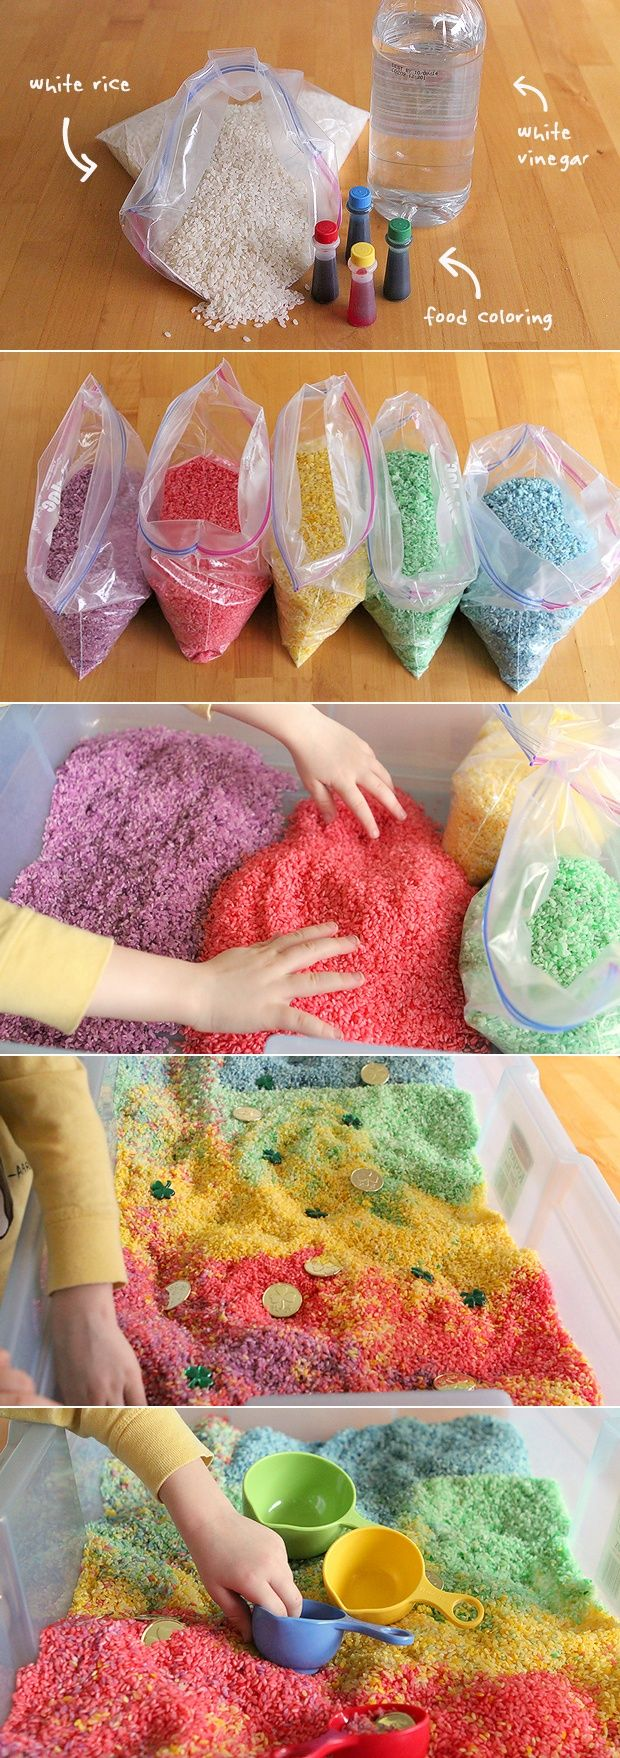 How to make rainbow rice for arts, crafts, and sensory play. (Play Recipe)